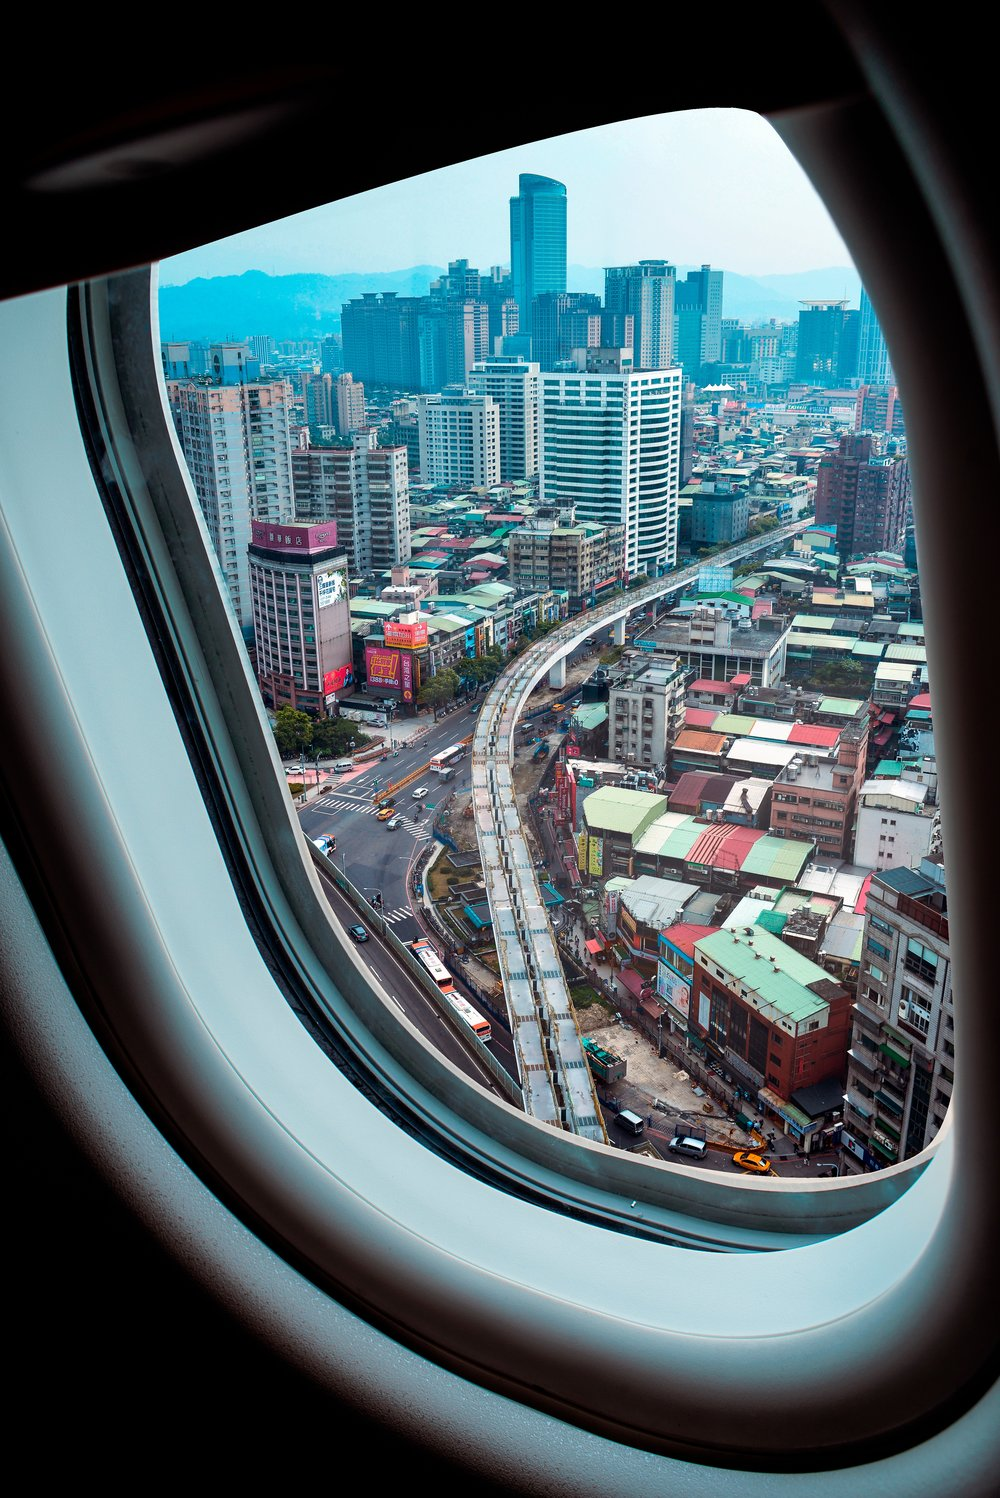 10 Photos From Aircraft Windows -